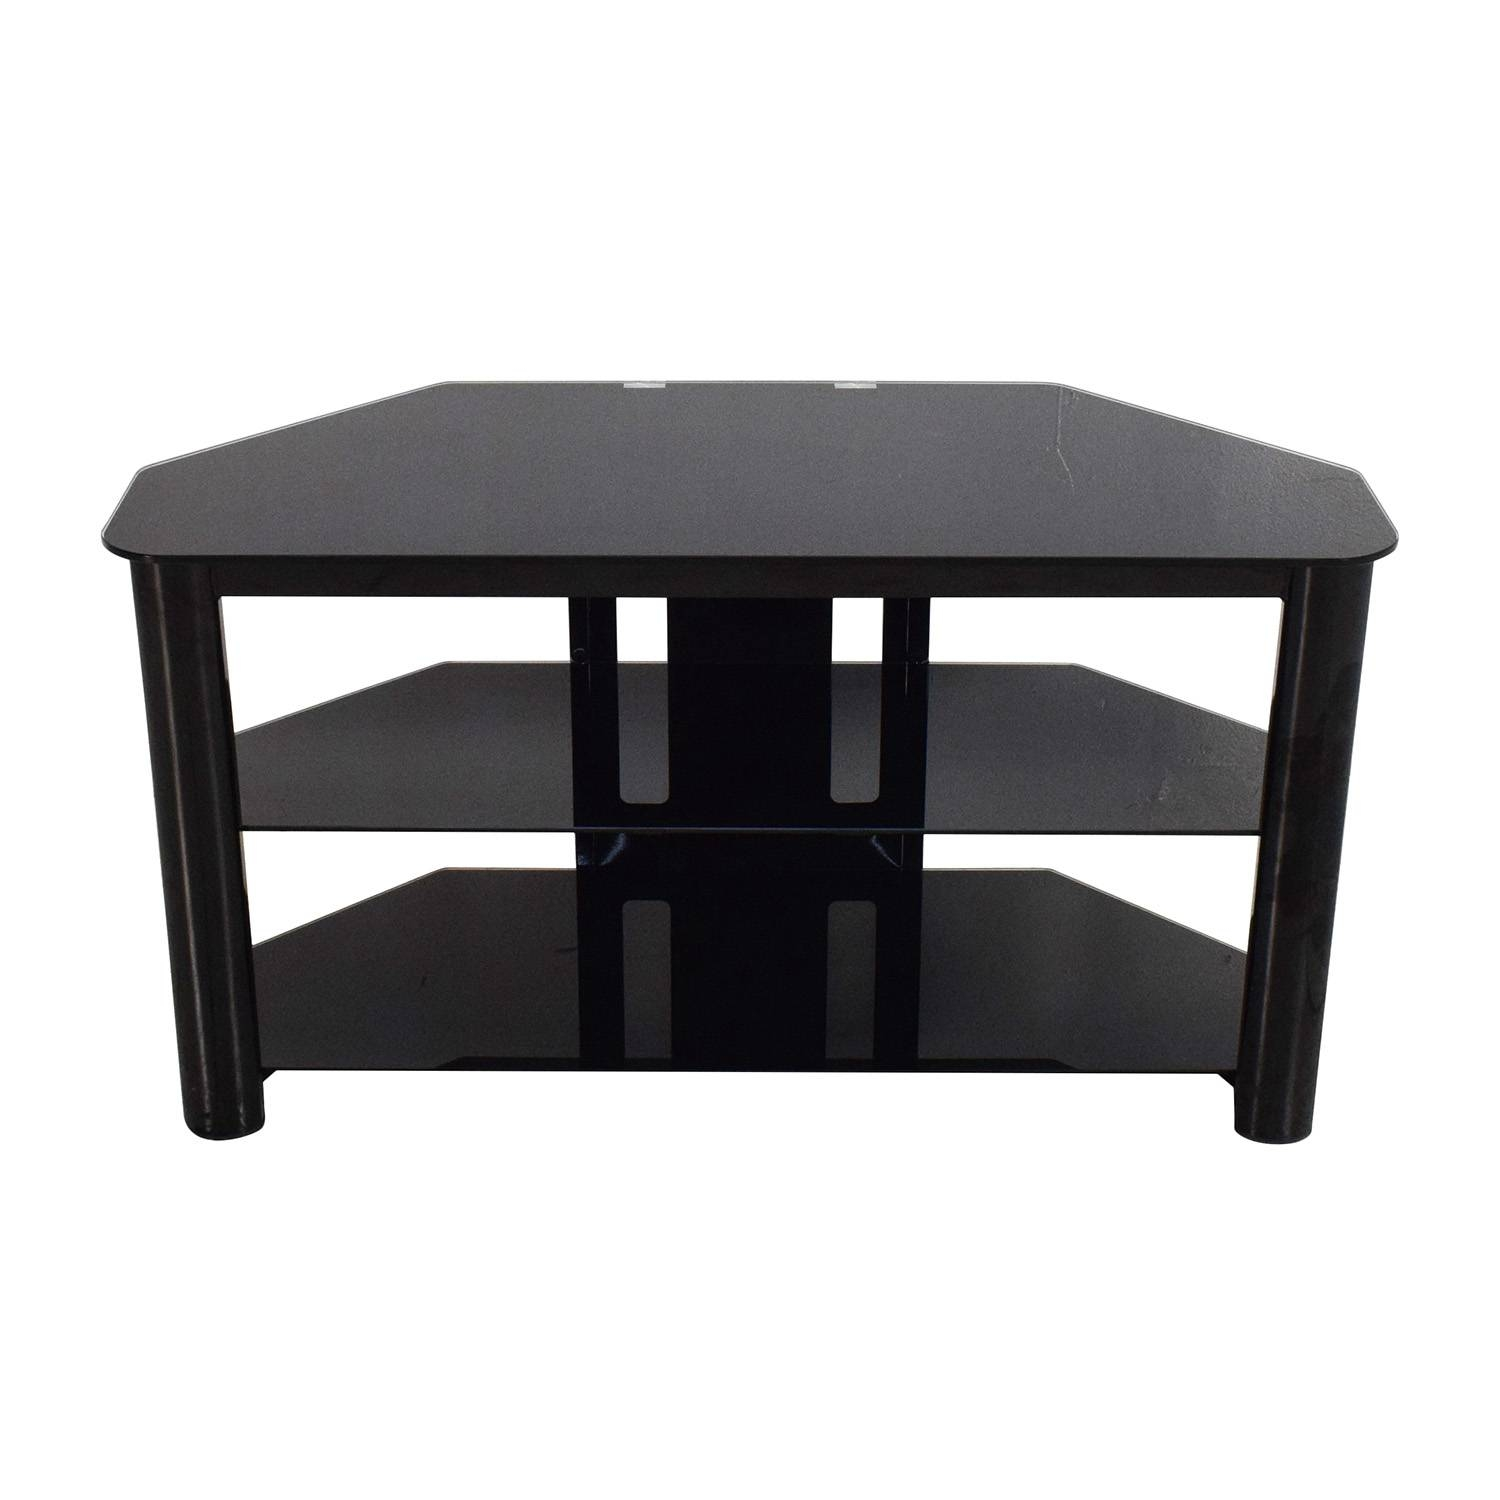 61% Off – Best Buy Best Buy Black Glass Tv Stand / Storage Pertaining To Black Glass Tv Stands (Gallery 5 of 15)